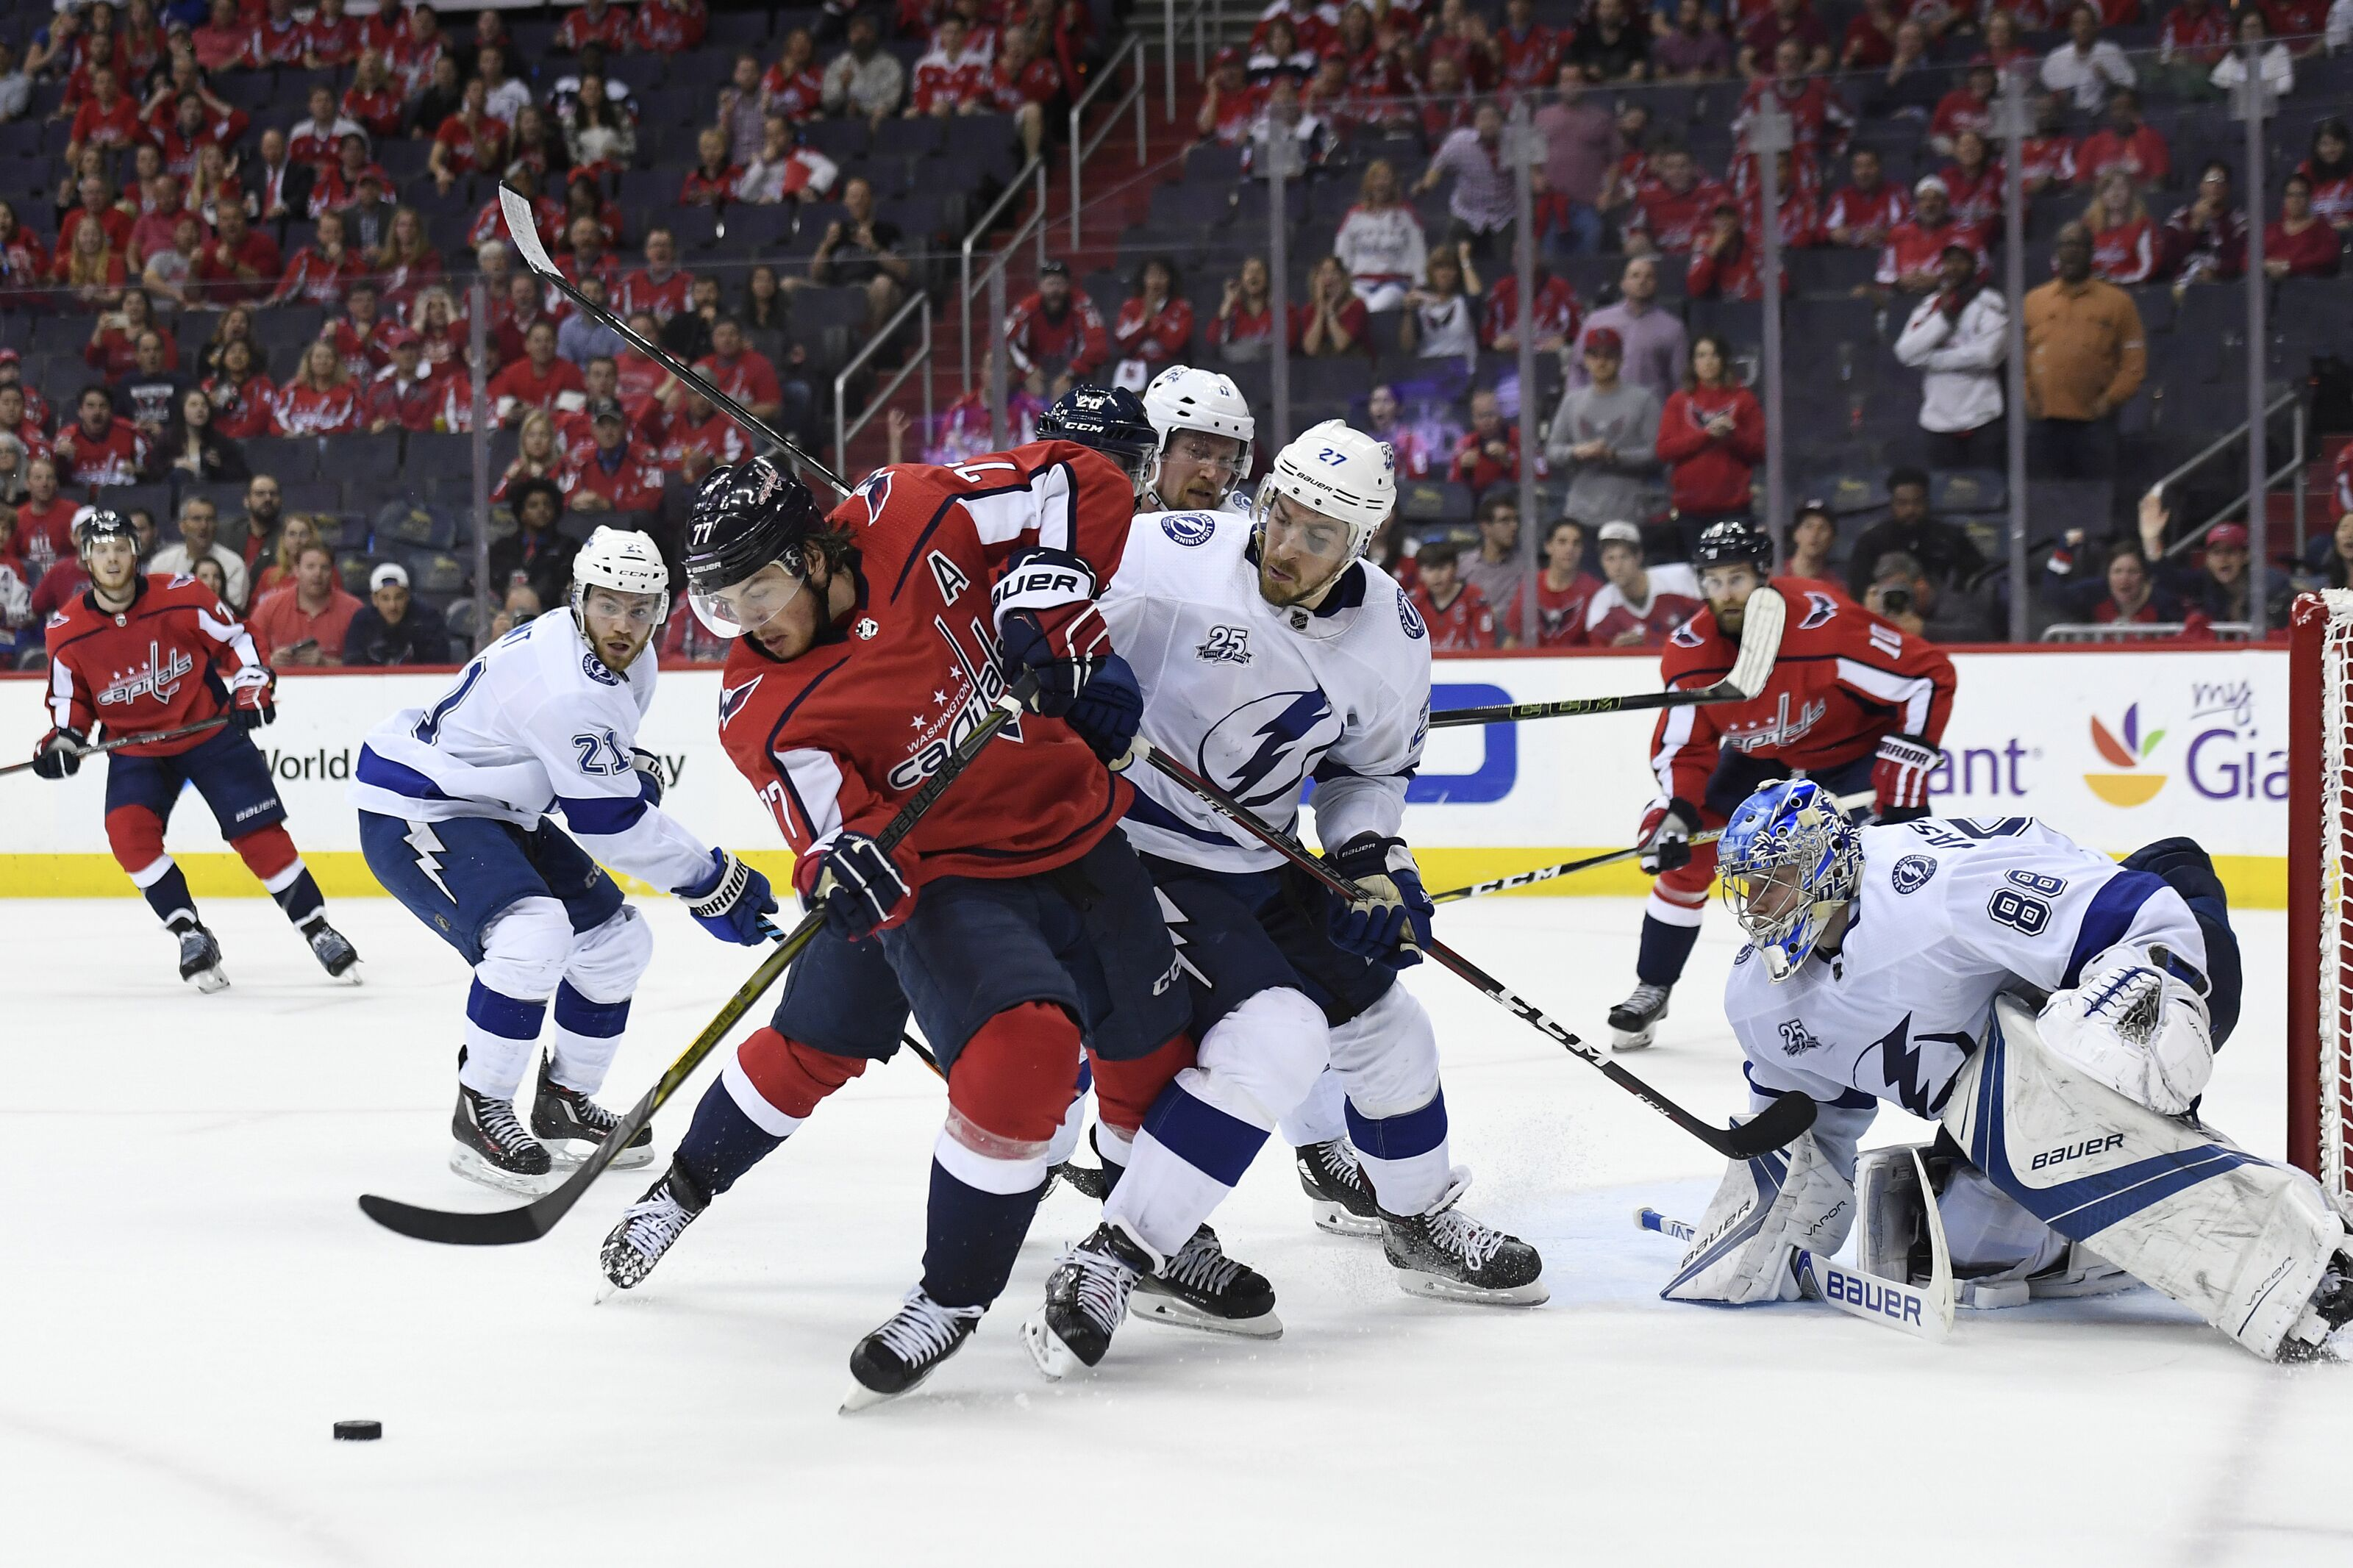 WASHINGTON, DC - MAY 15: T.J. Oshie #77 of the Washington Capitals battles for the puck against Ryan McDonagh #27 of the Tampa Bay Lightning in the third period in Game Three of the Eastern Conference Final during the 2018 NHL Stanley Cup Playoffs at Capital One Arena on May 15, 2018 in Washington, DC. (Photo by Patrick McDermott/NHLI via Getty Images)